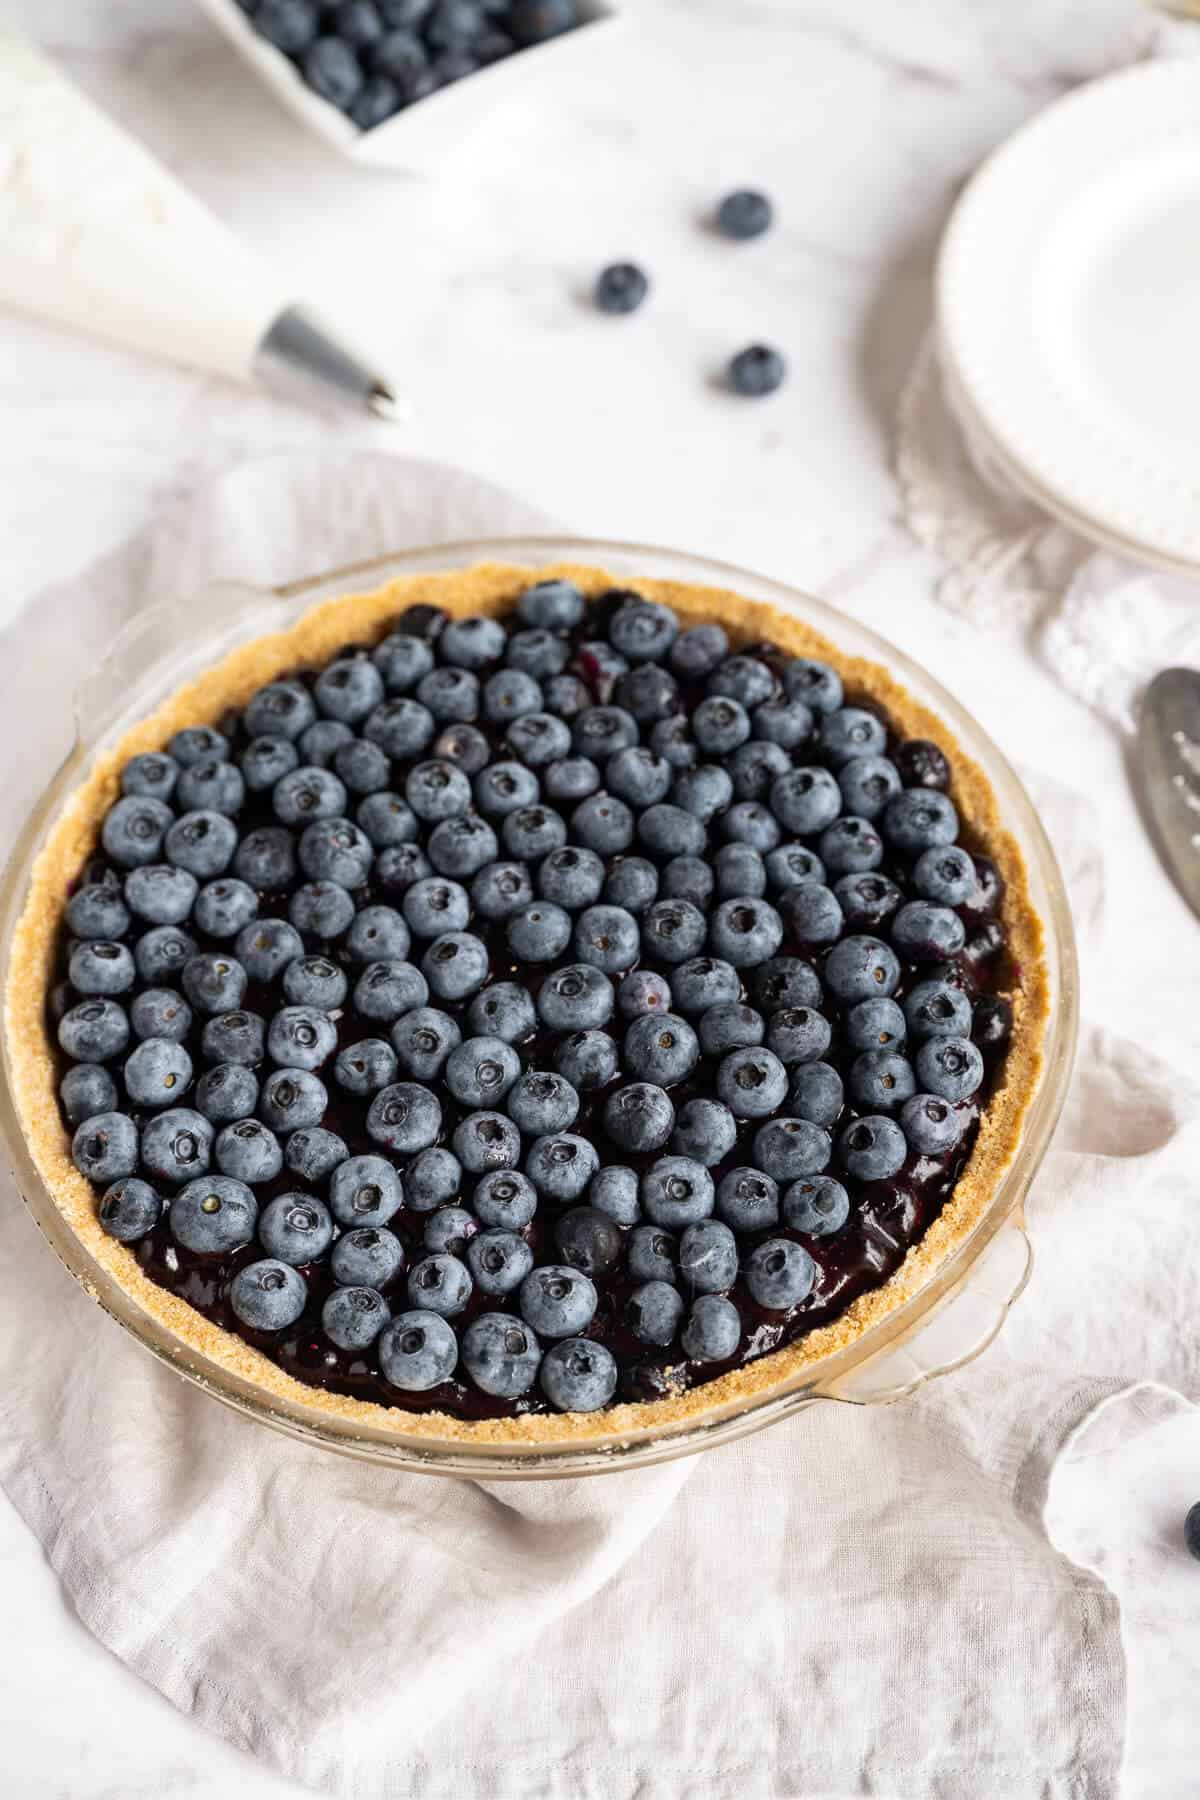 completed fresh blueberry pie next to plates and pie server